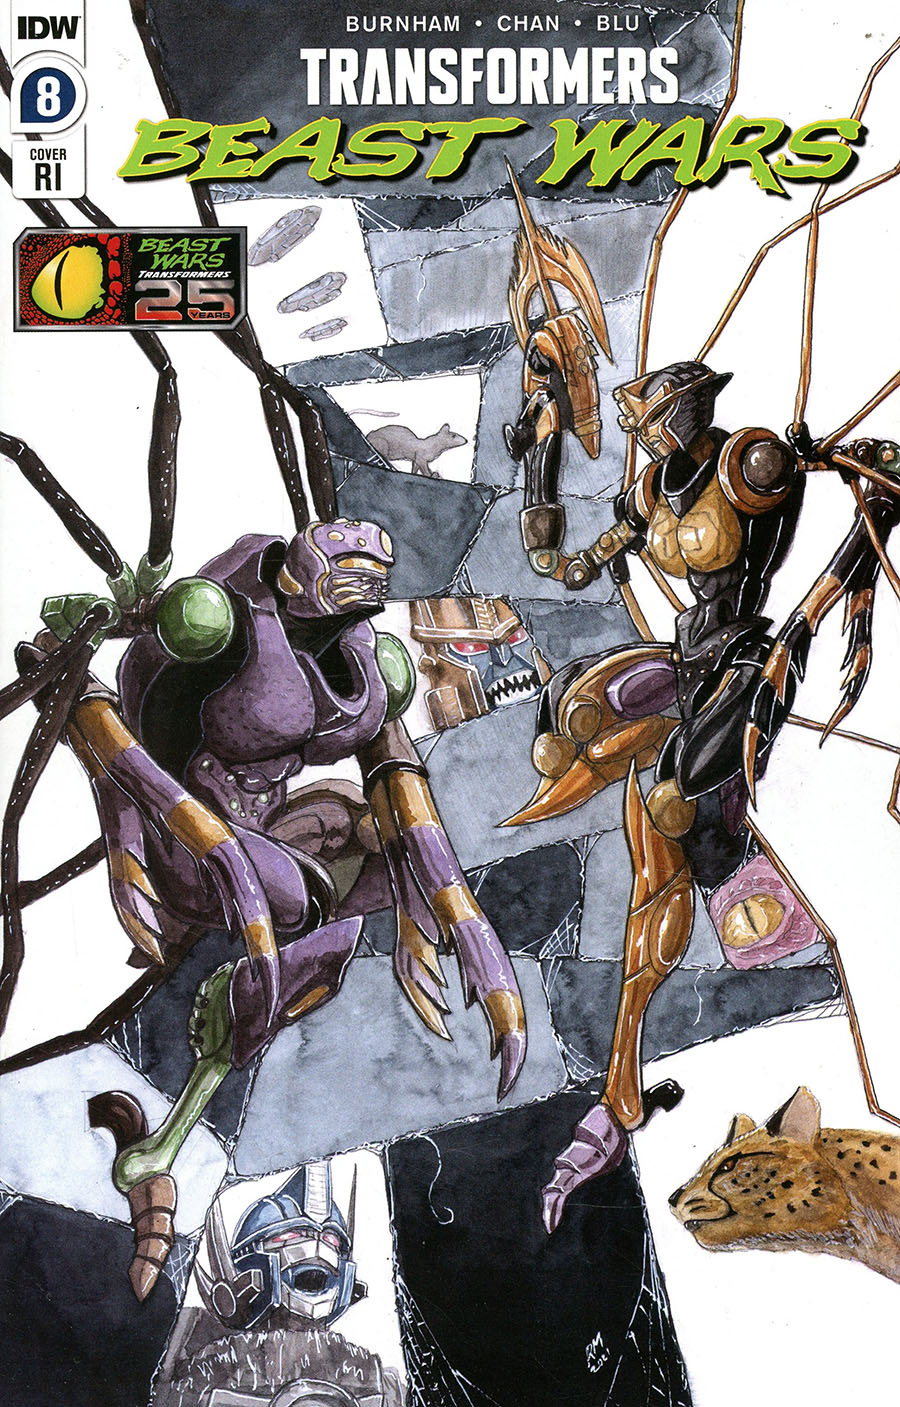 Transformers Beast Wars Vol 2 #8 Cover C Incentive Ryan Miller Variant Cover